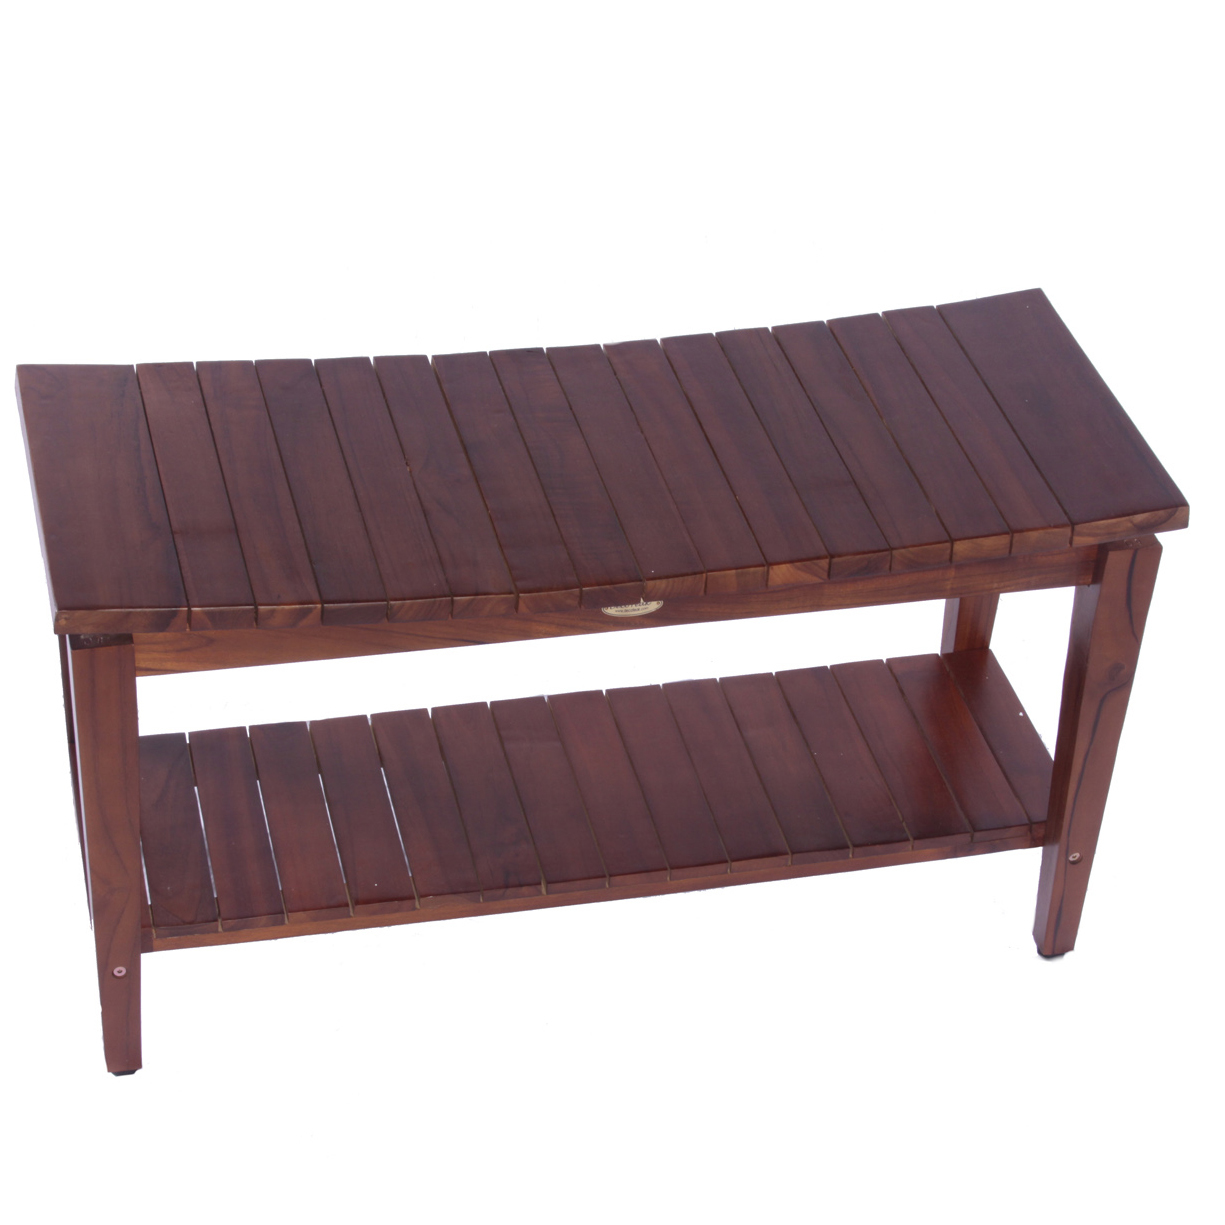 "DT140 35"" Teak Shower Bench with Shelf"